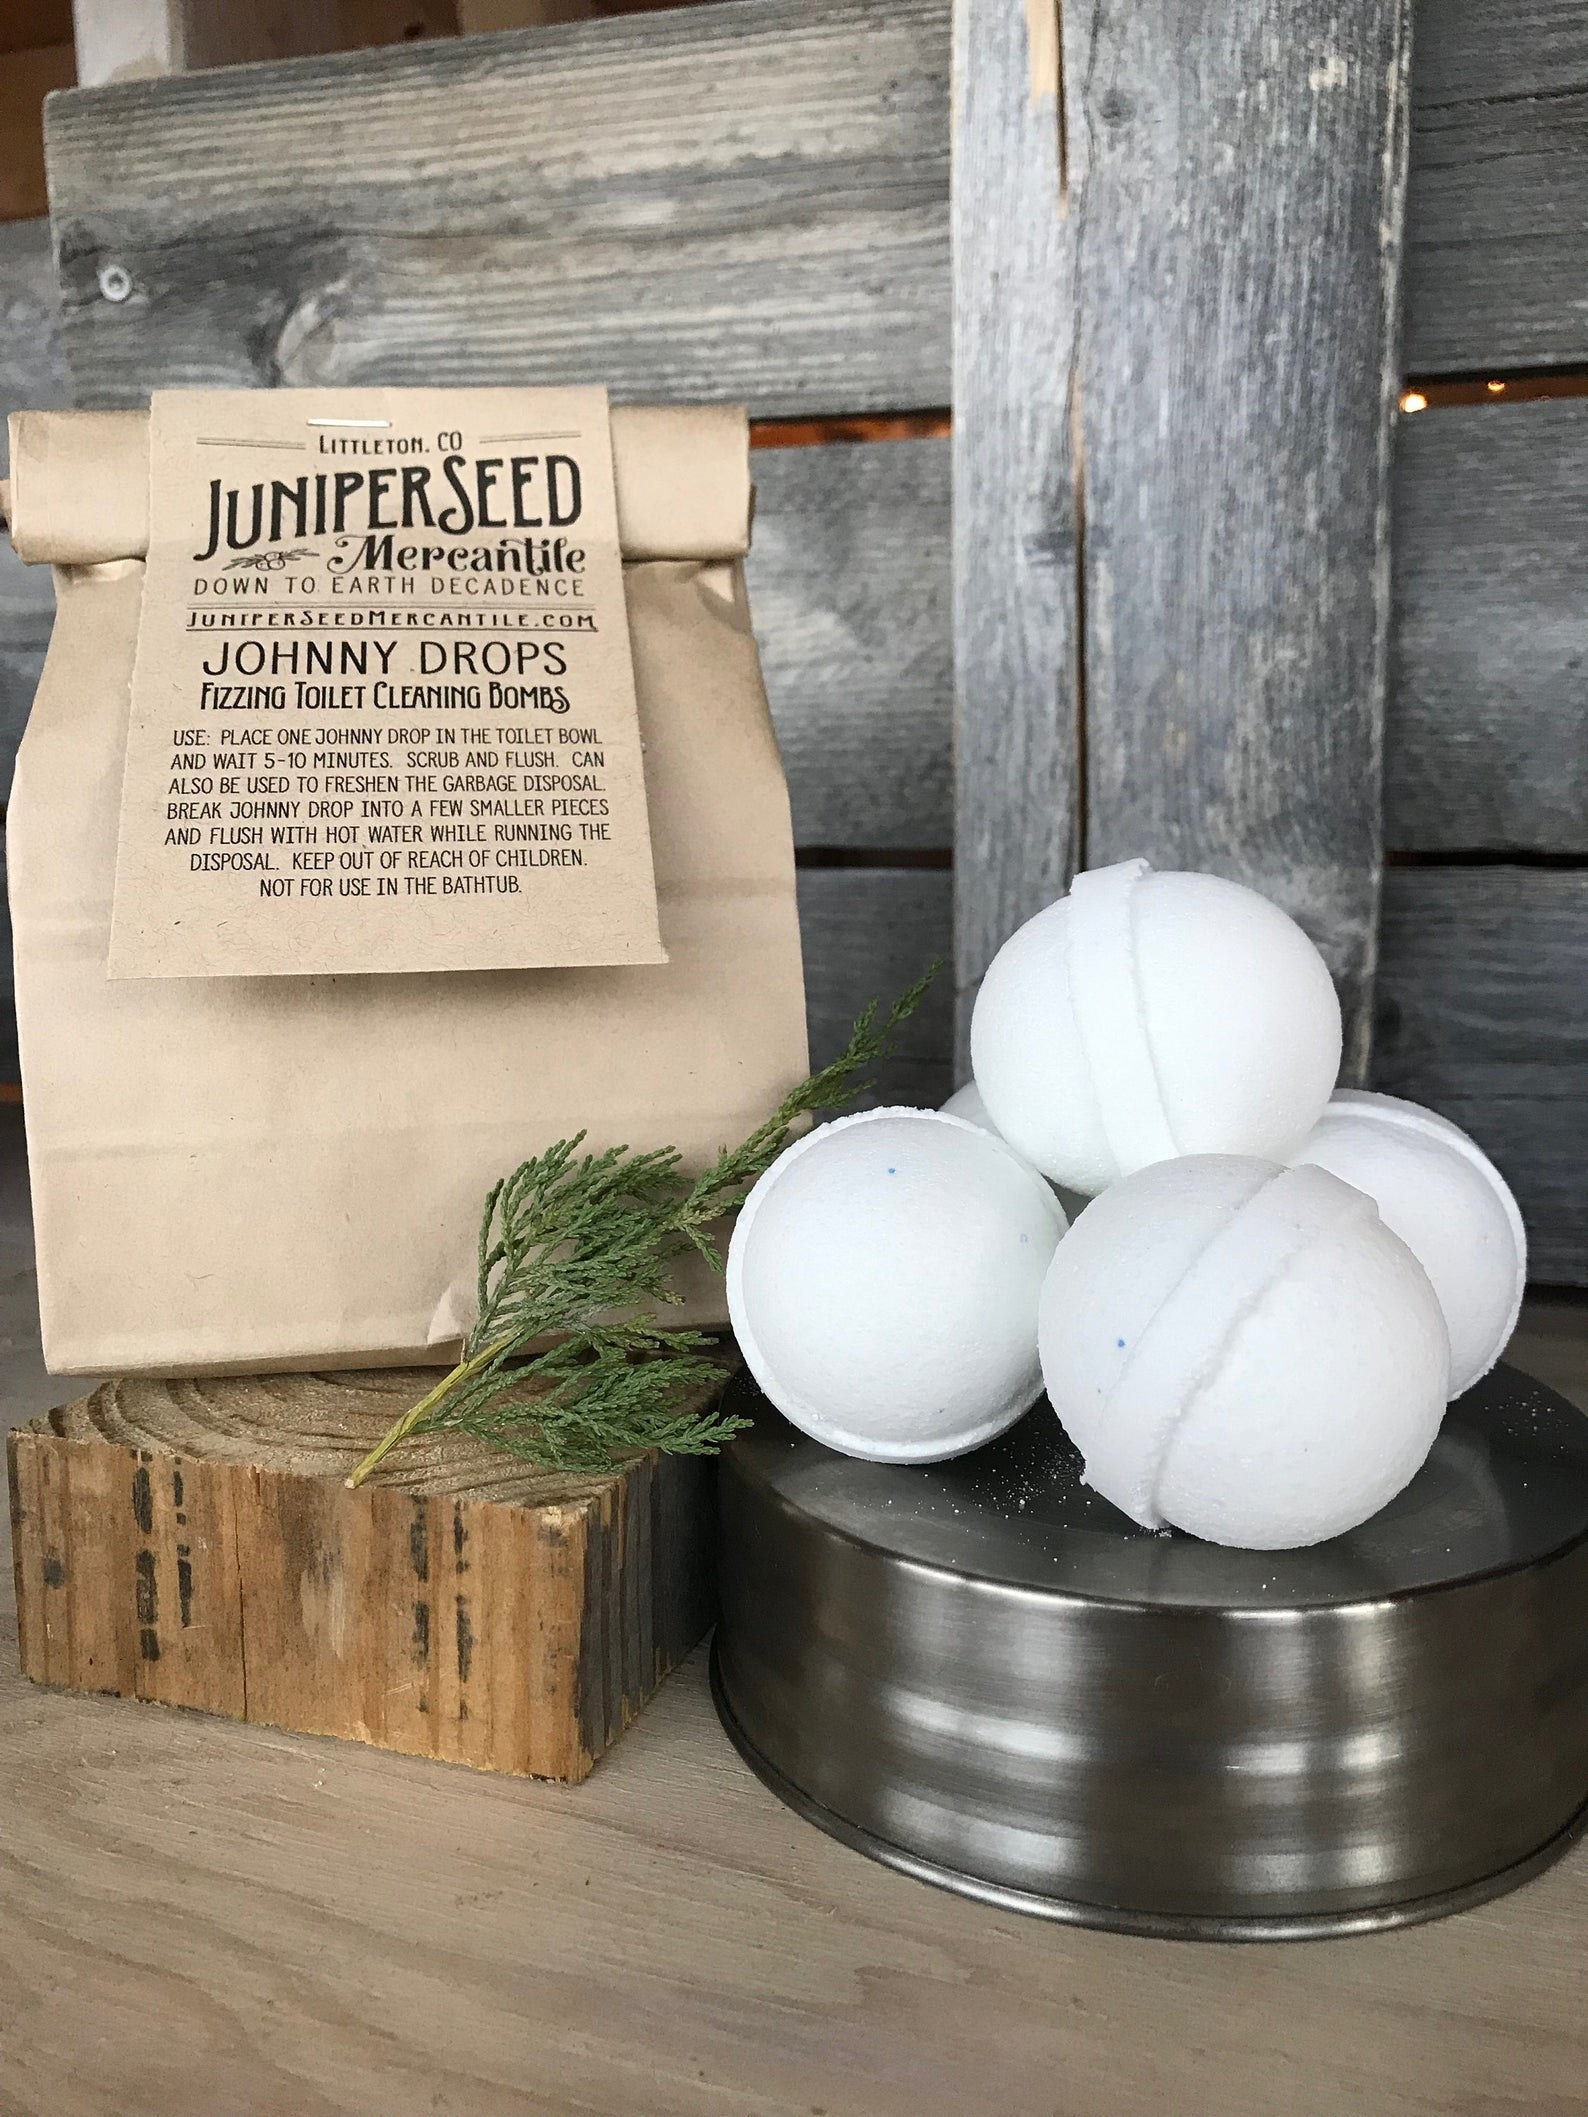 The white bath bomb-like cleaning balls